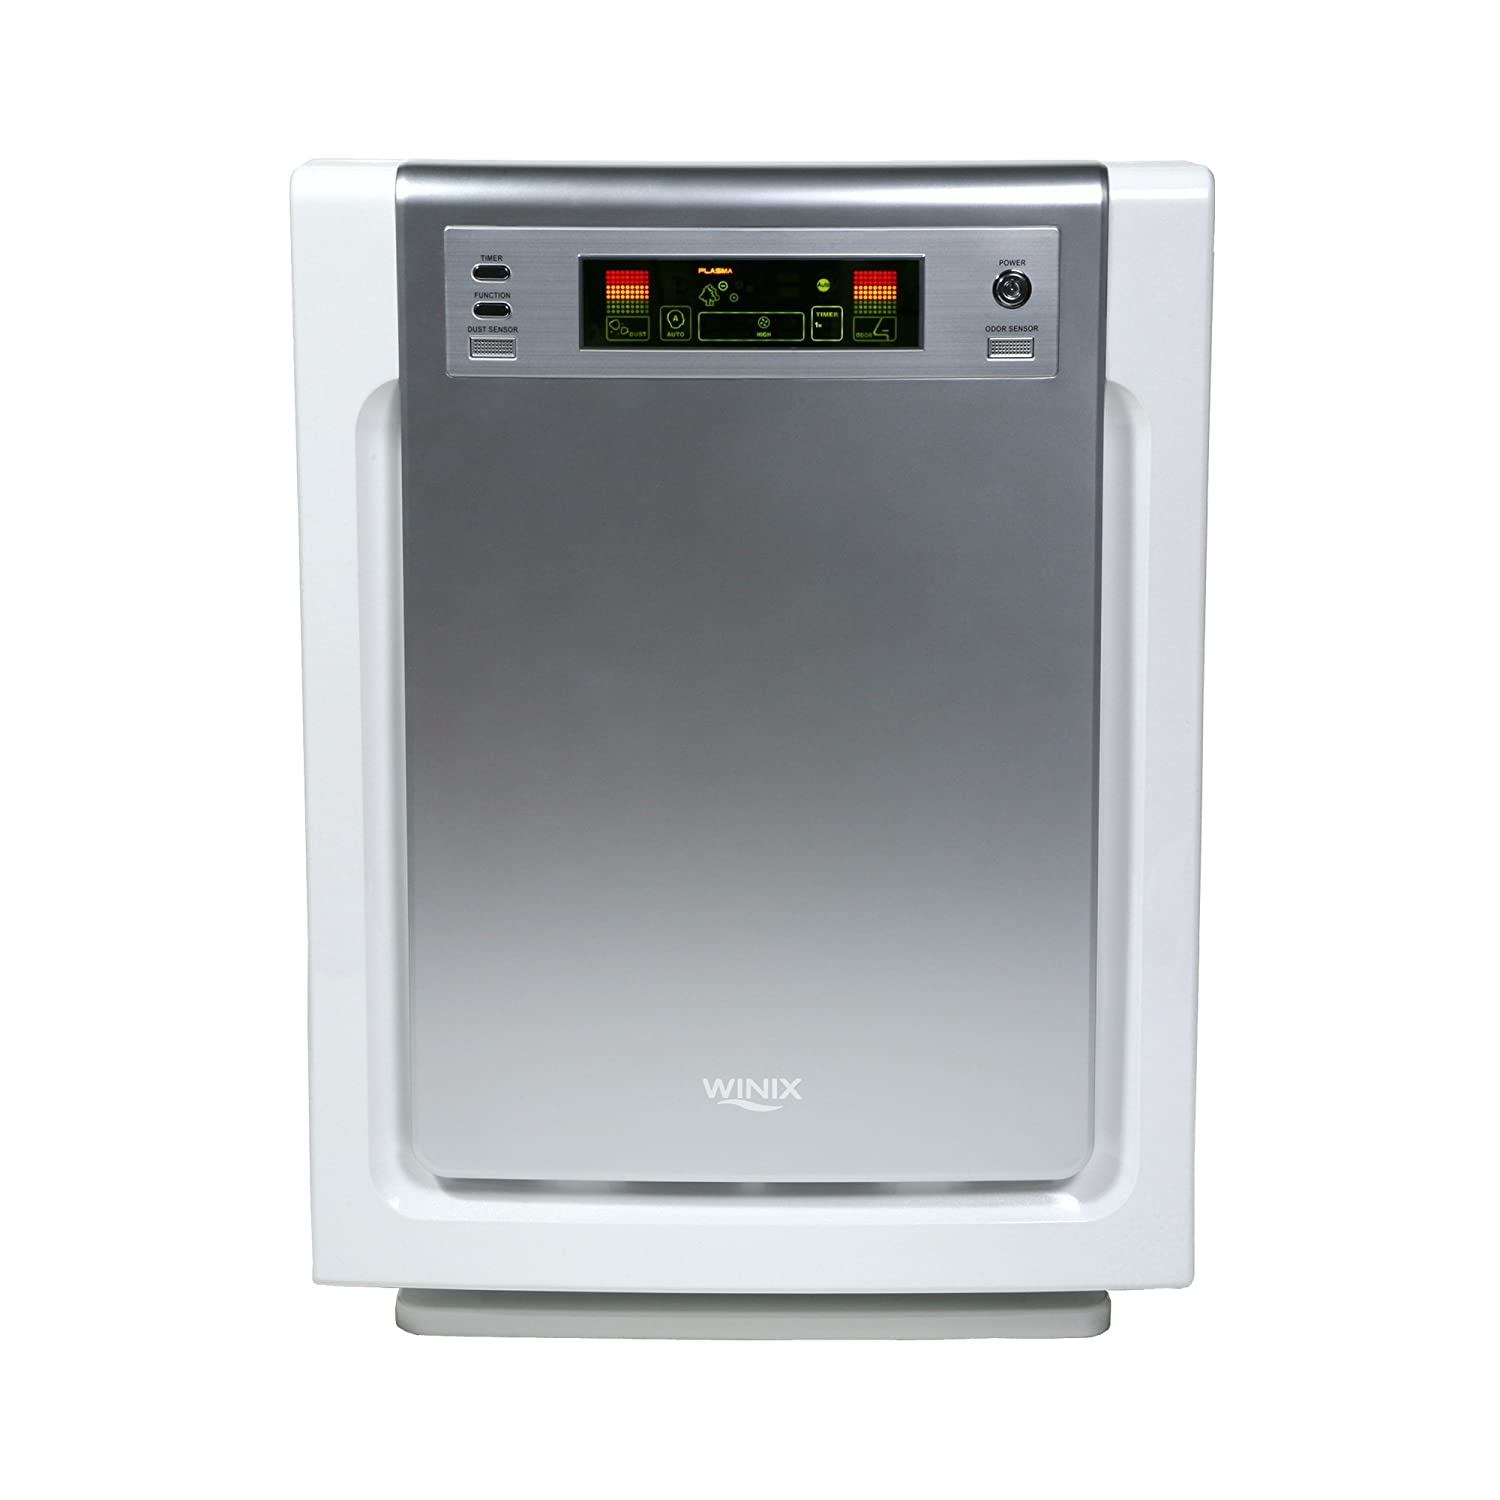 Winix model WAC9500